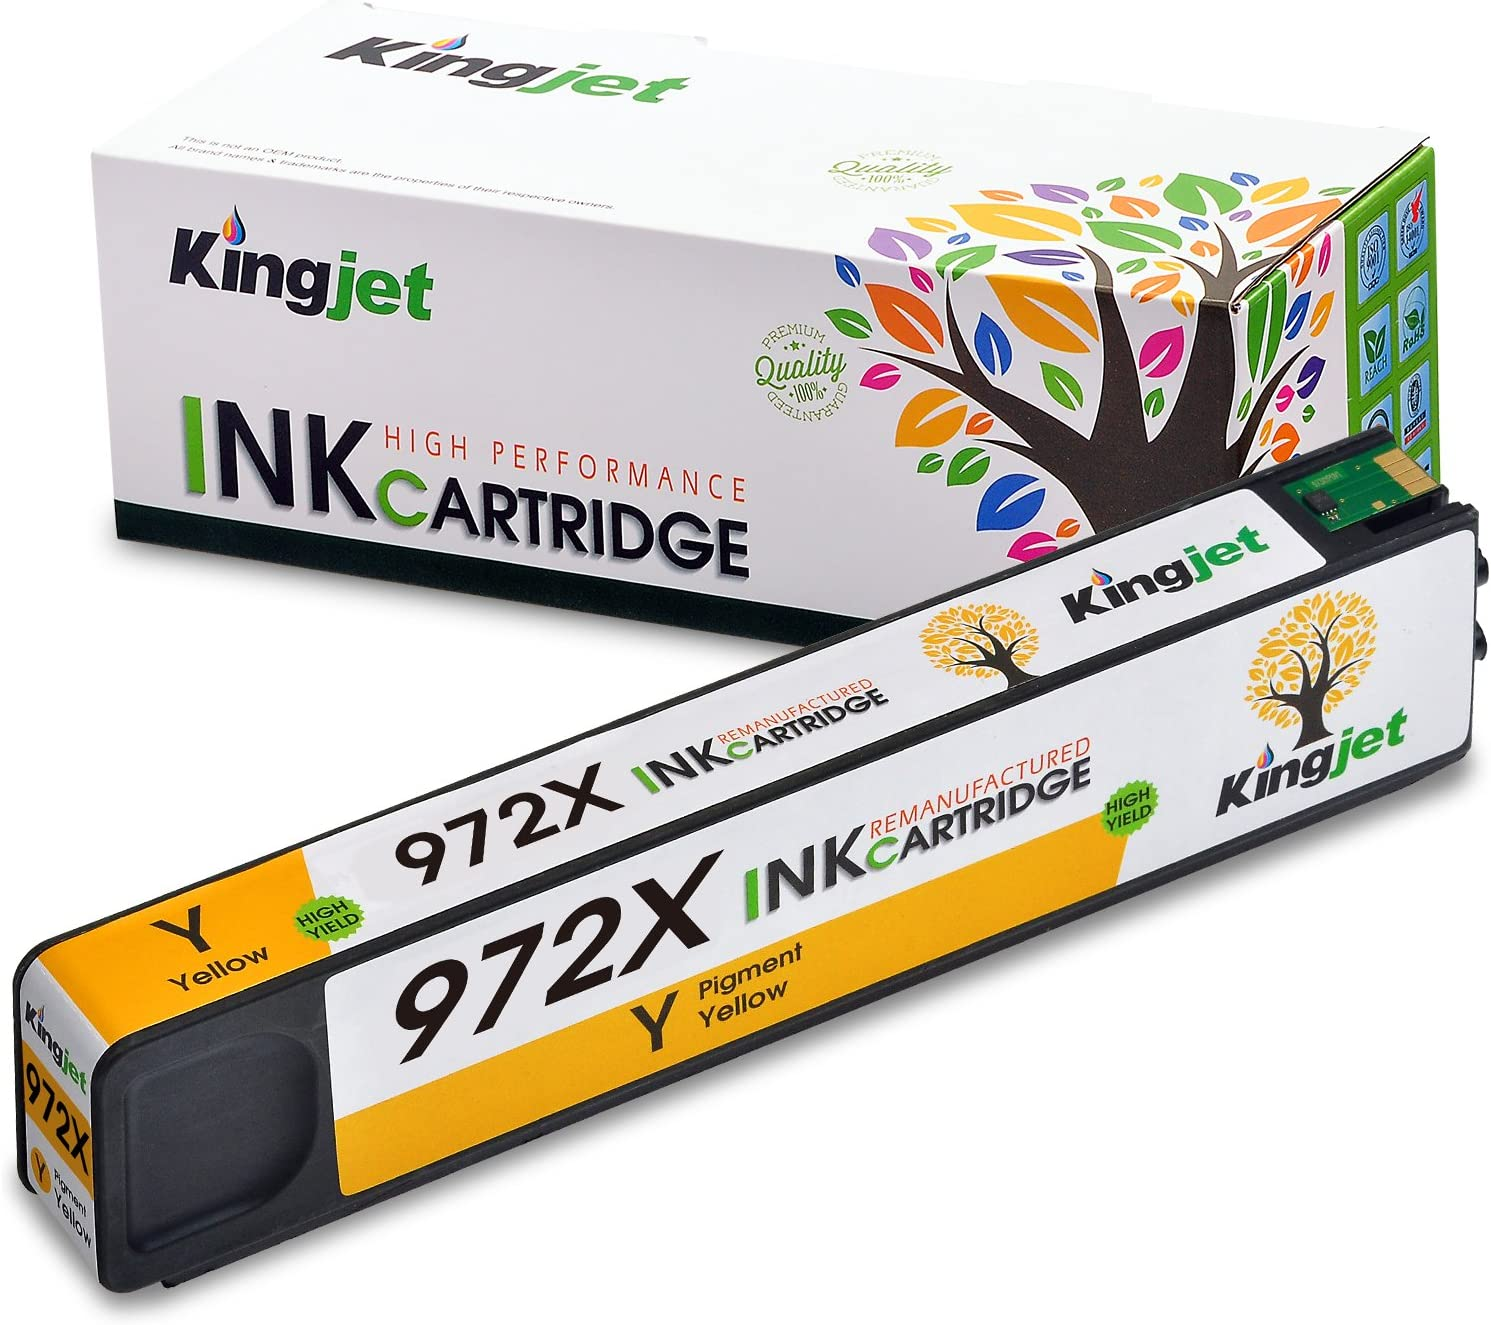 Kingjet Compatible Ink Cartridge Replacement for 972X Work with PageWide Pro 477dn, 477dw, 577dw, 577z, 552dw, 452dn, 452dw Printers, 1 Pack(Yellow)